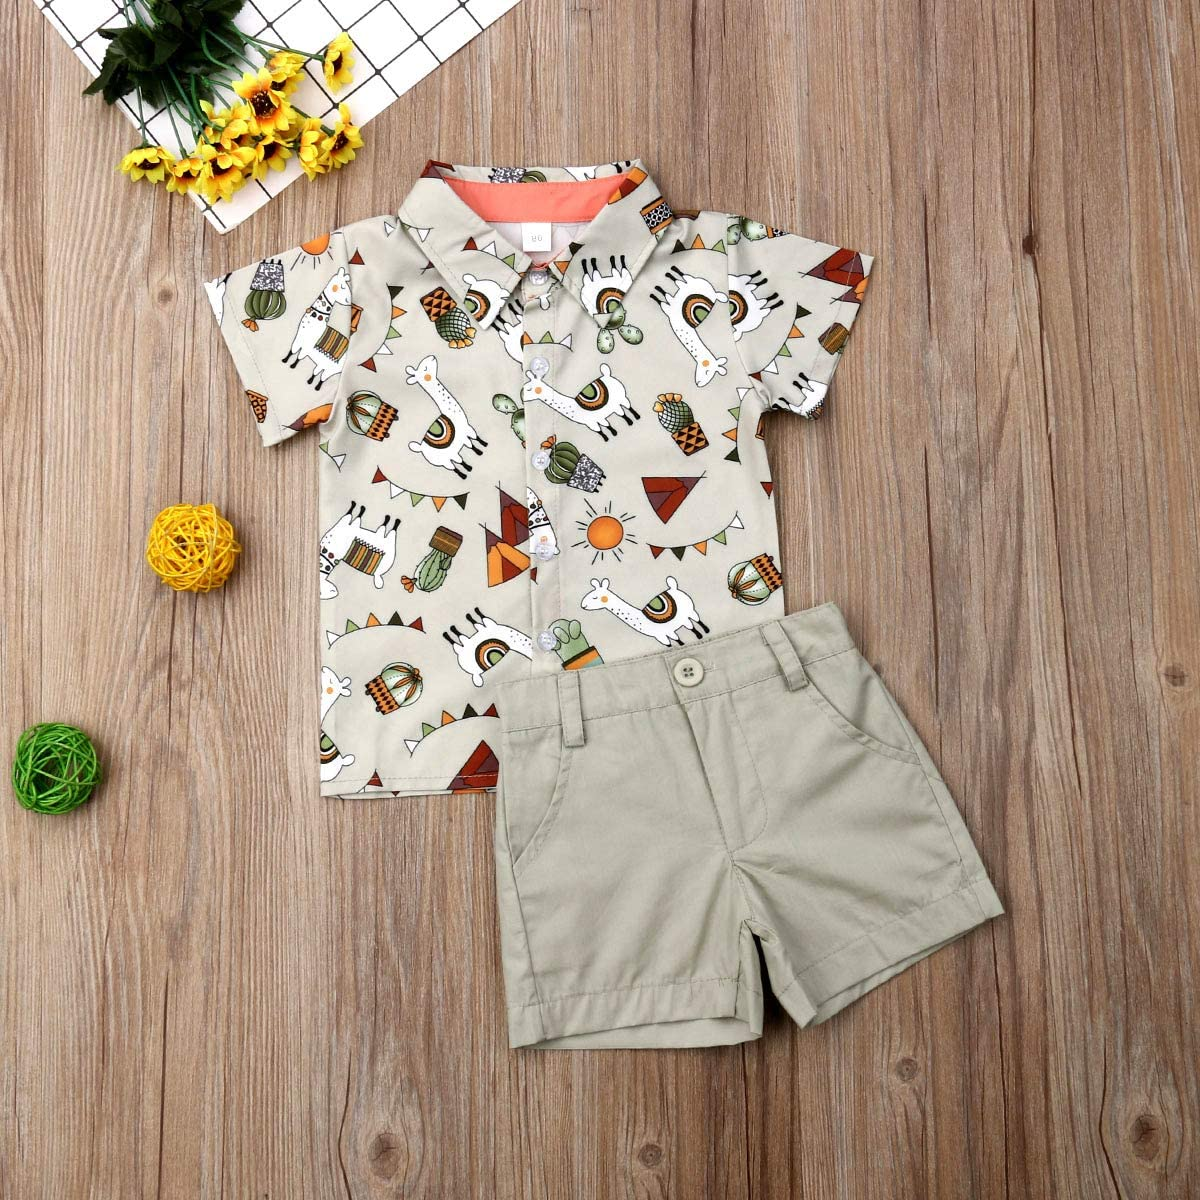 Shorts Set Toddler Baby Boys Summer Print Shirt Outfits Clothes Short Sleeve Button Down Tops